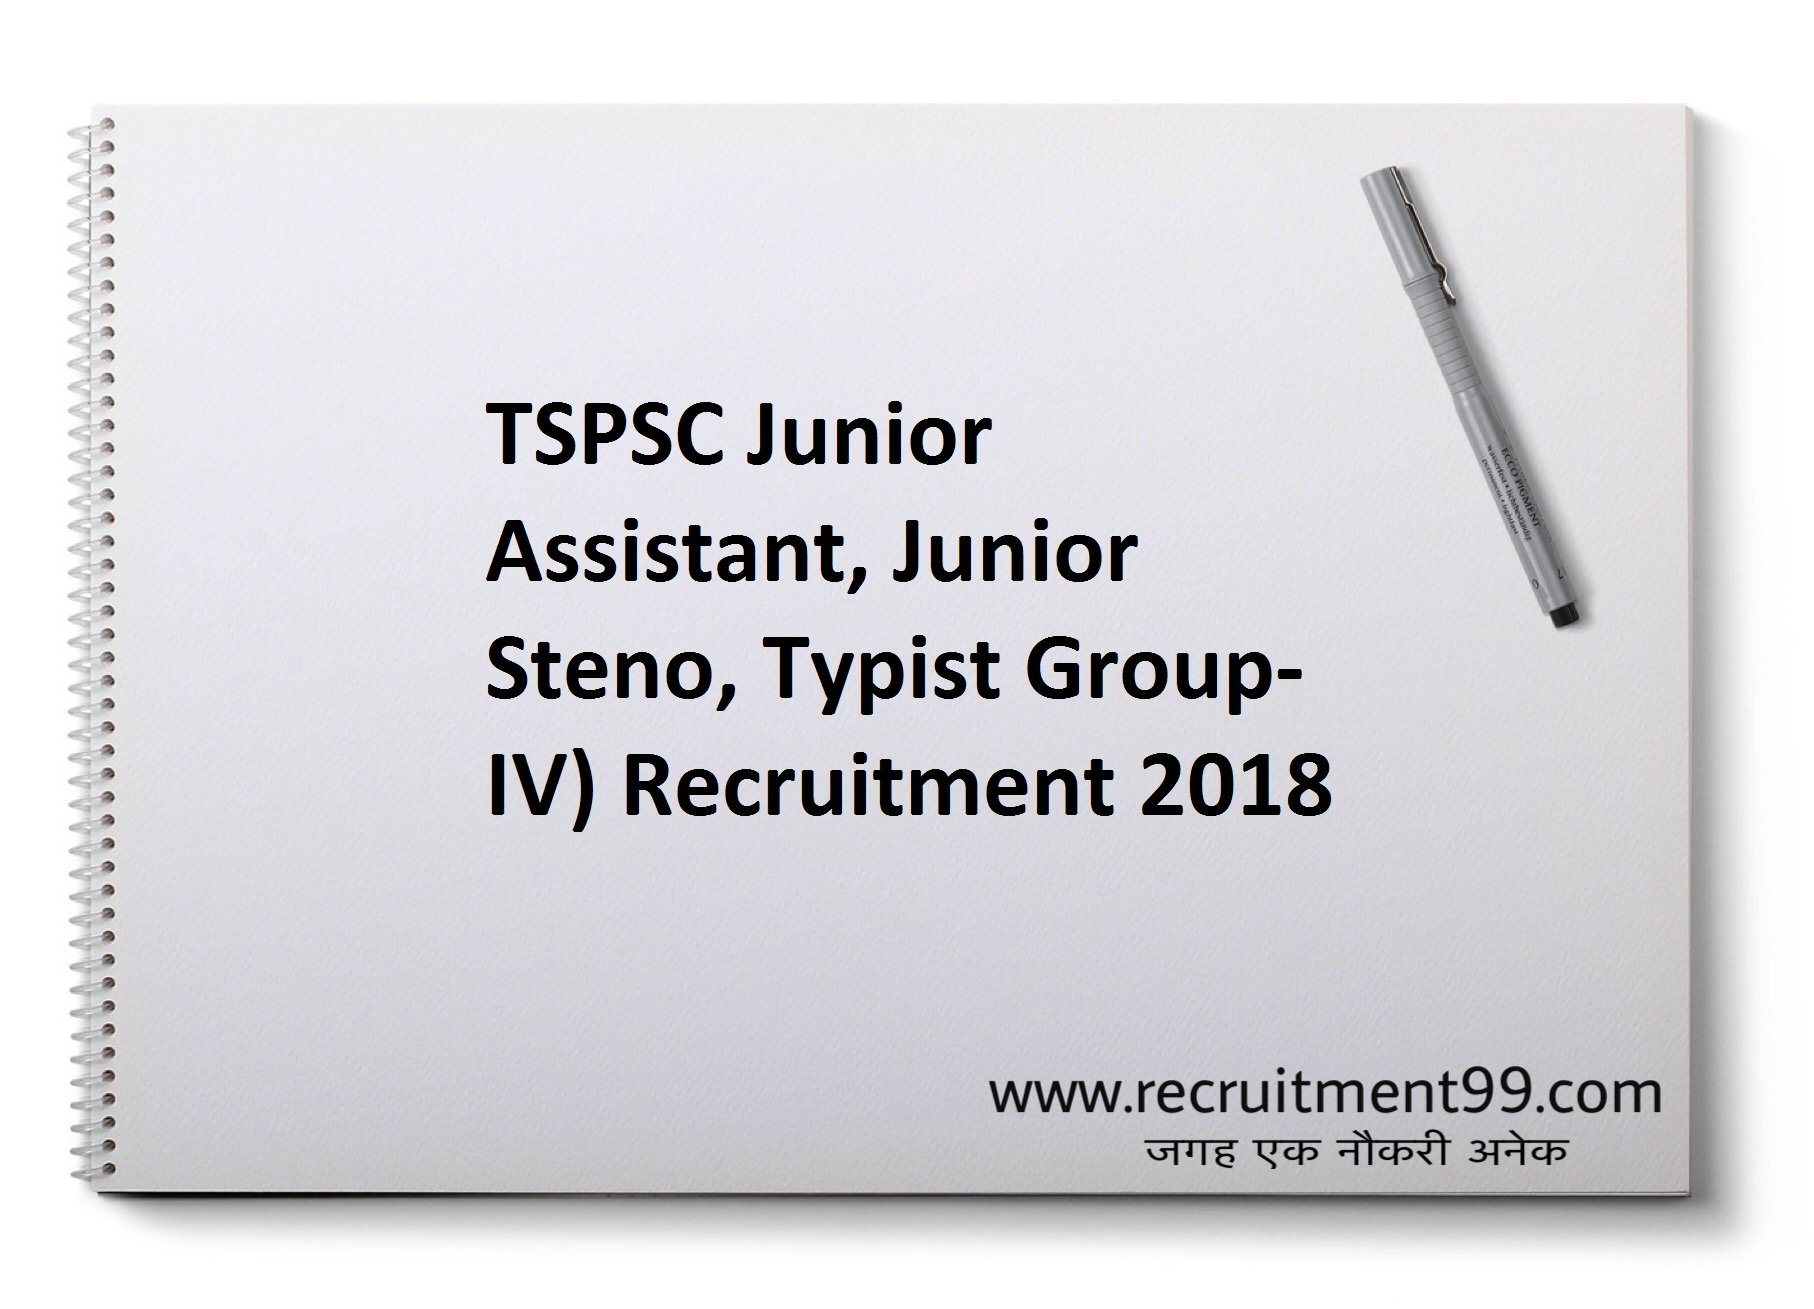 TSPSC Junior Assistant Junior Steno Typist Group-IV) Recruitment Hall ticket Result 2018